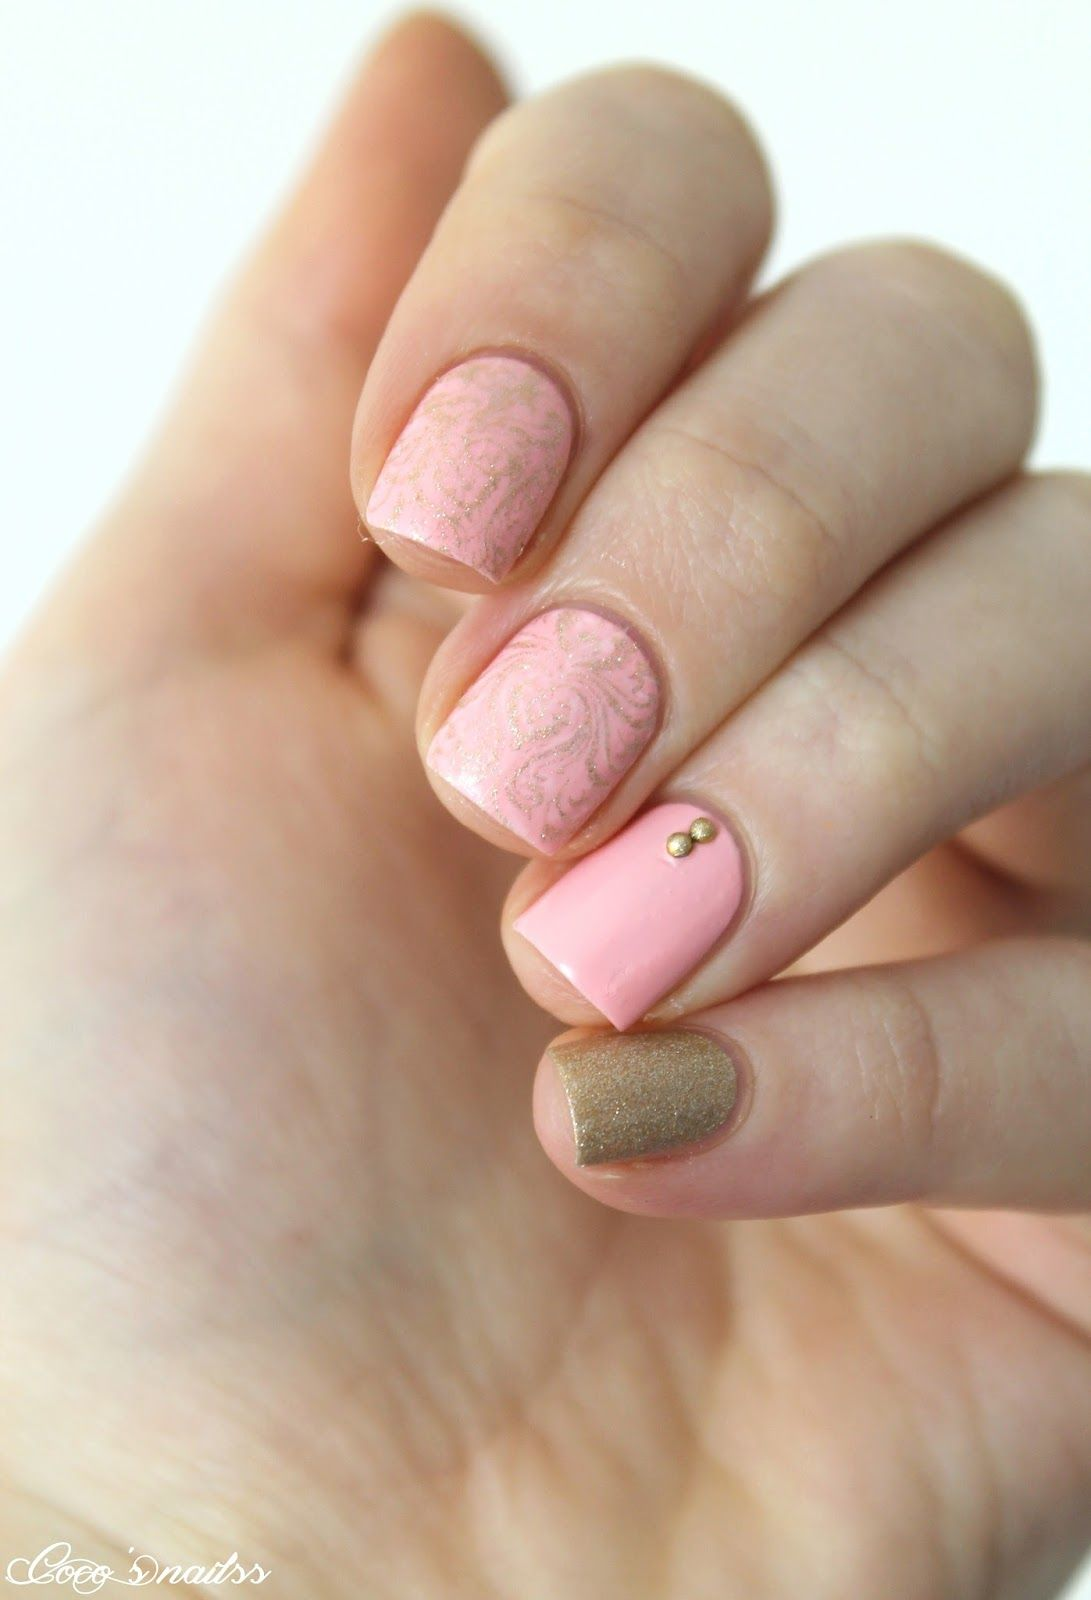 girly nail art #cocosnailss #nails #skittlette #pink